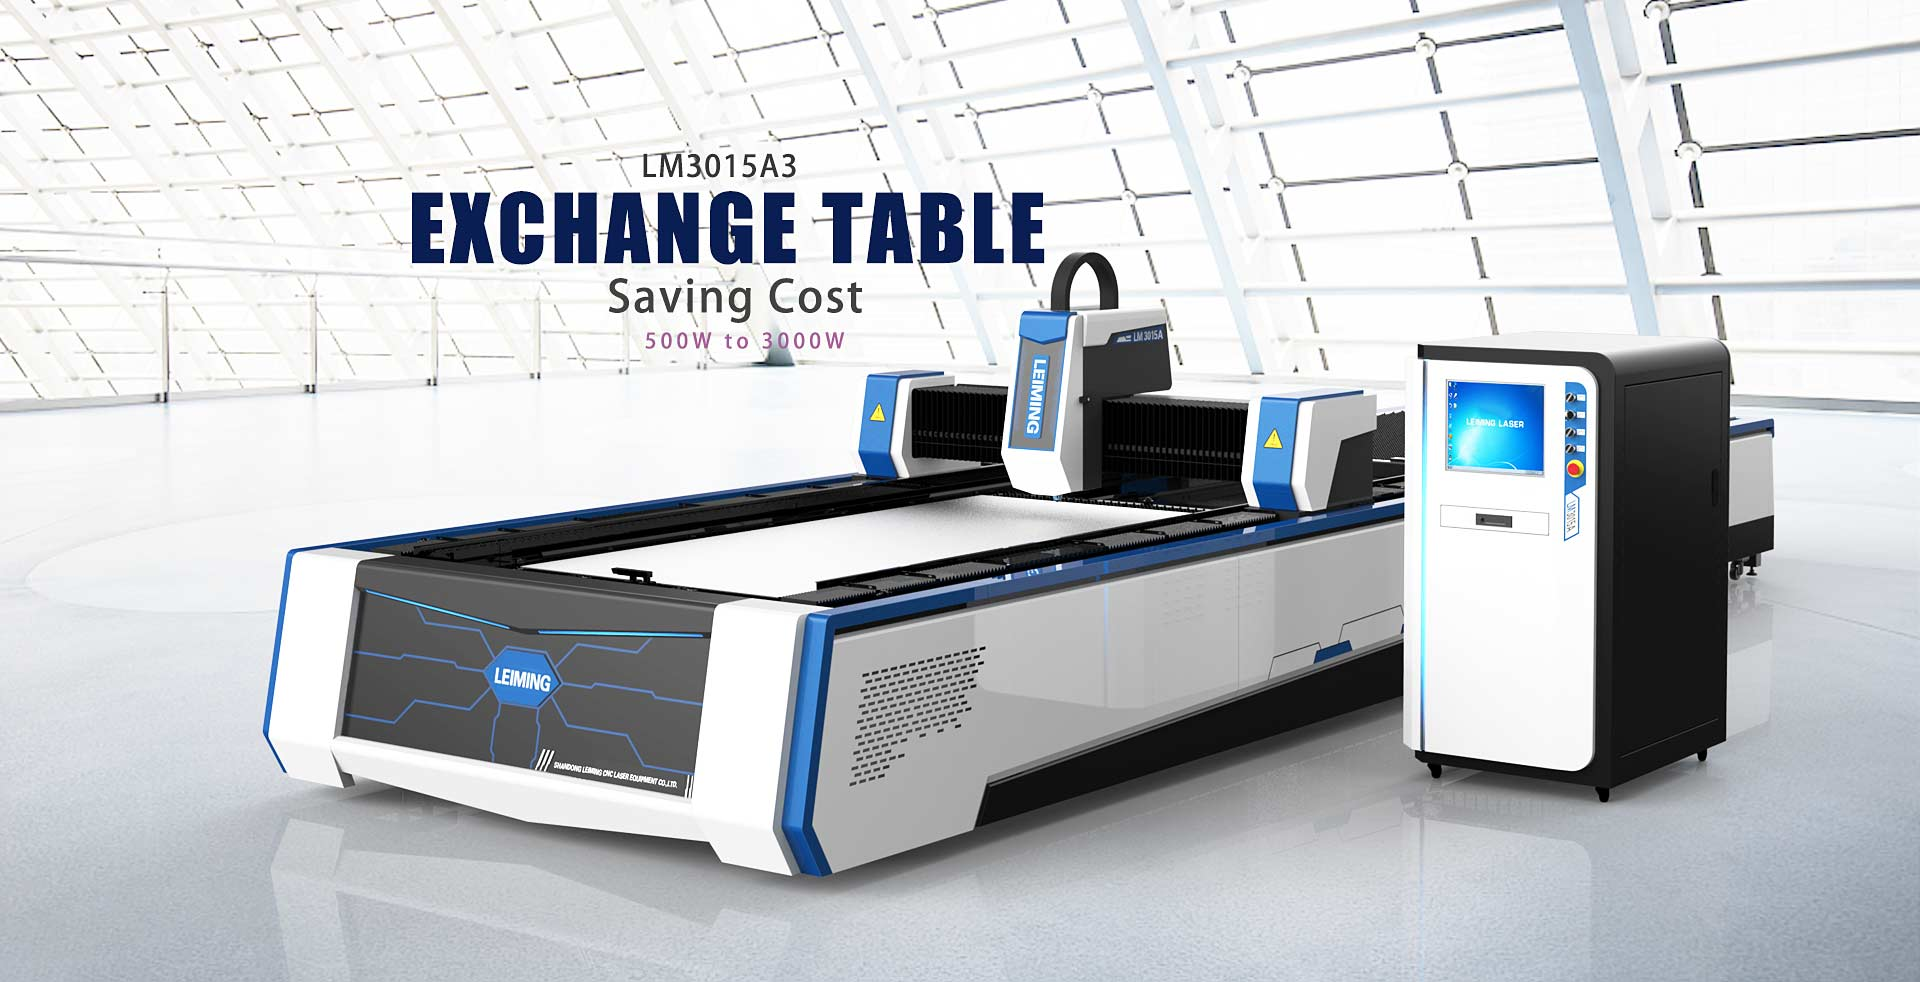 3015A3 exchange table laser cutter